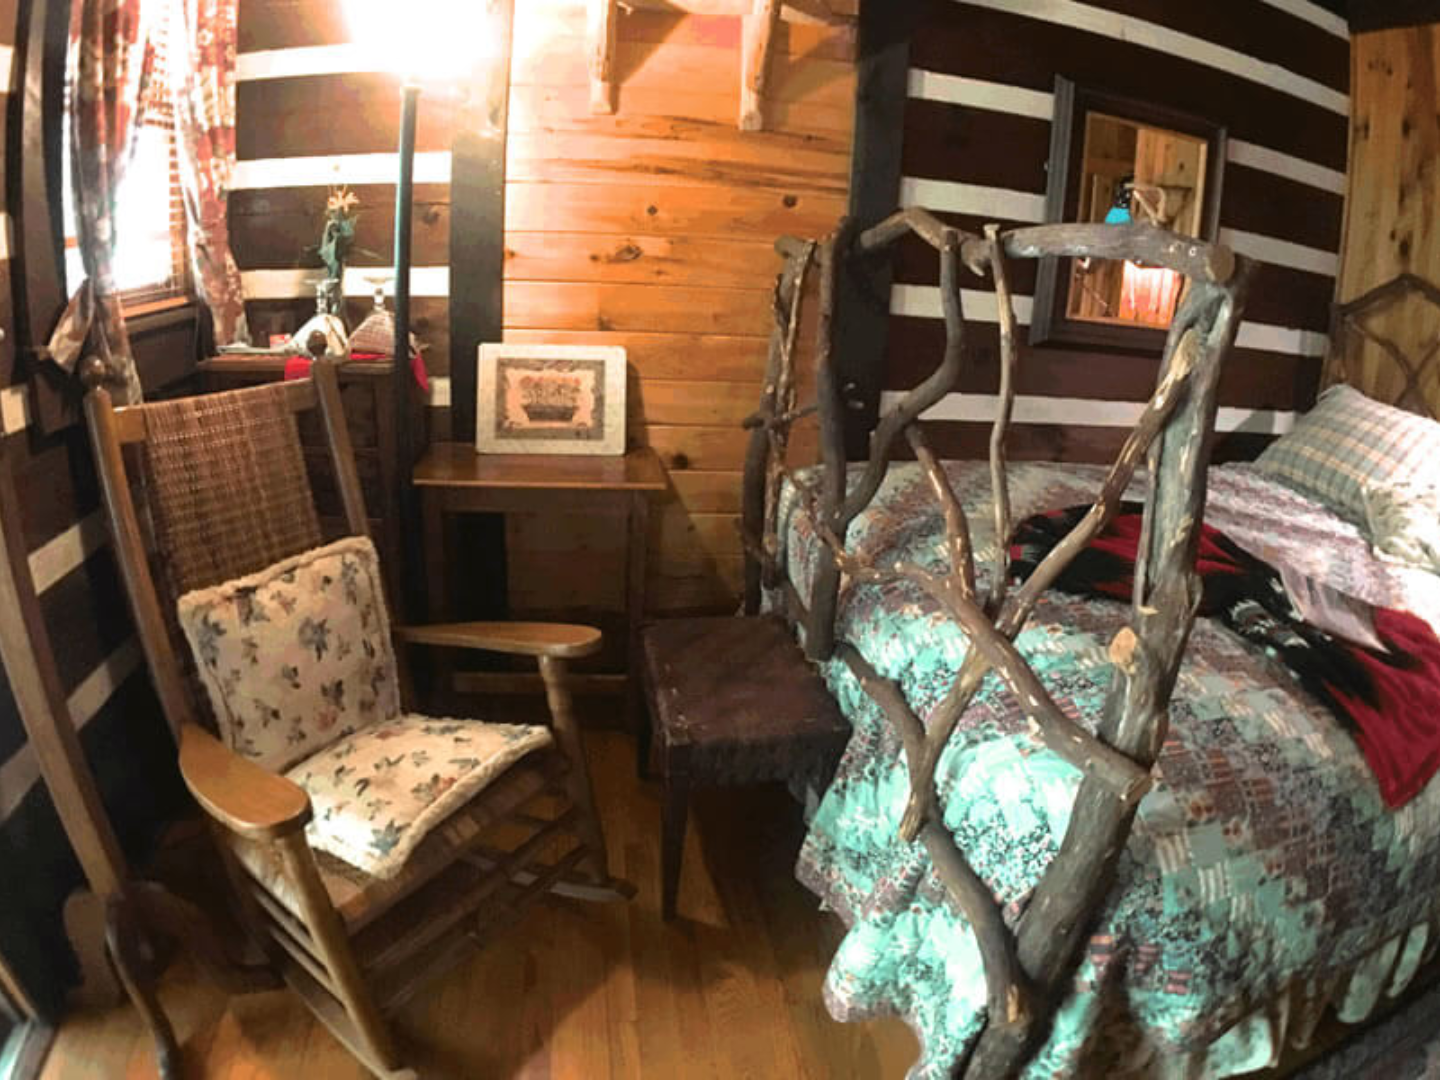 A living room filled with furniture and a fireplace at Creekwalk Inn and Cabins.